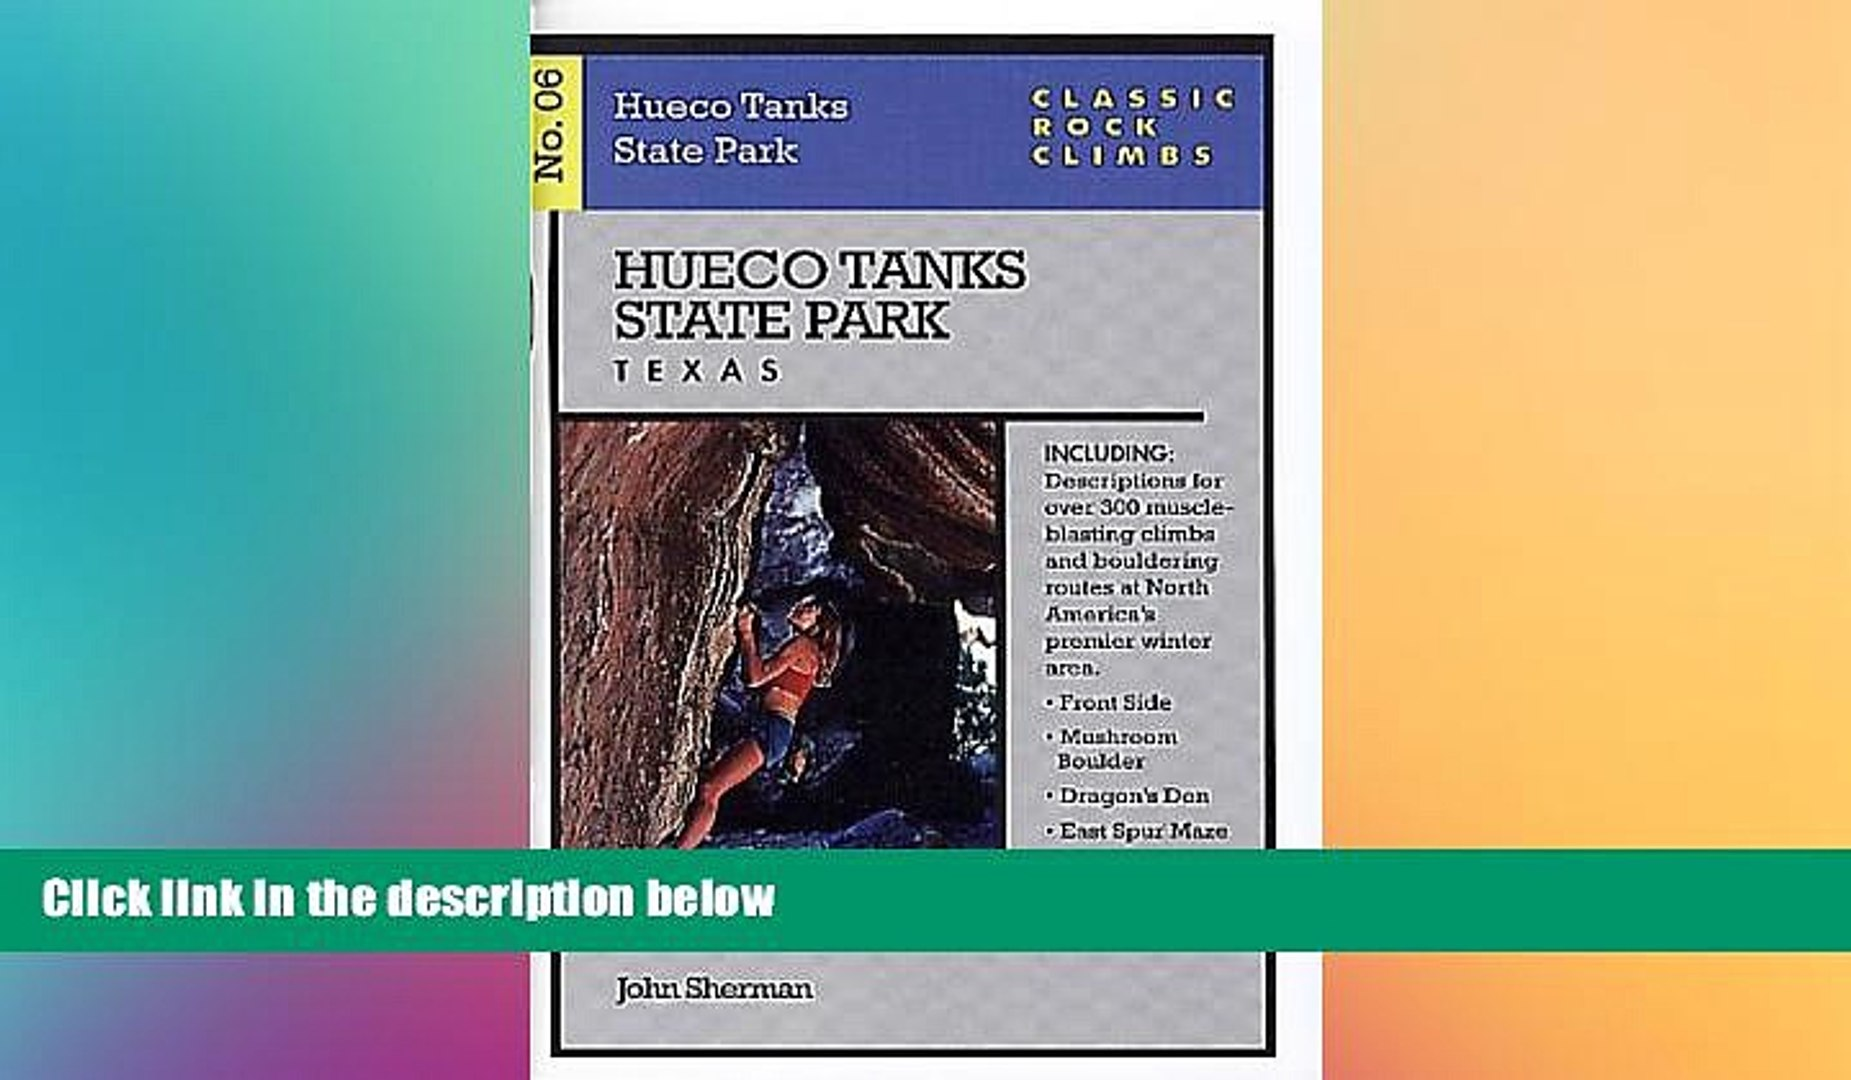 Must Have  Hueco Tanks State Park, Texas (Classic Rock Climbs, No. 06 )  READ Ebook Full Ebook